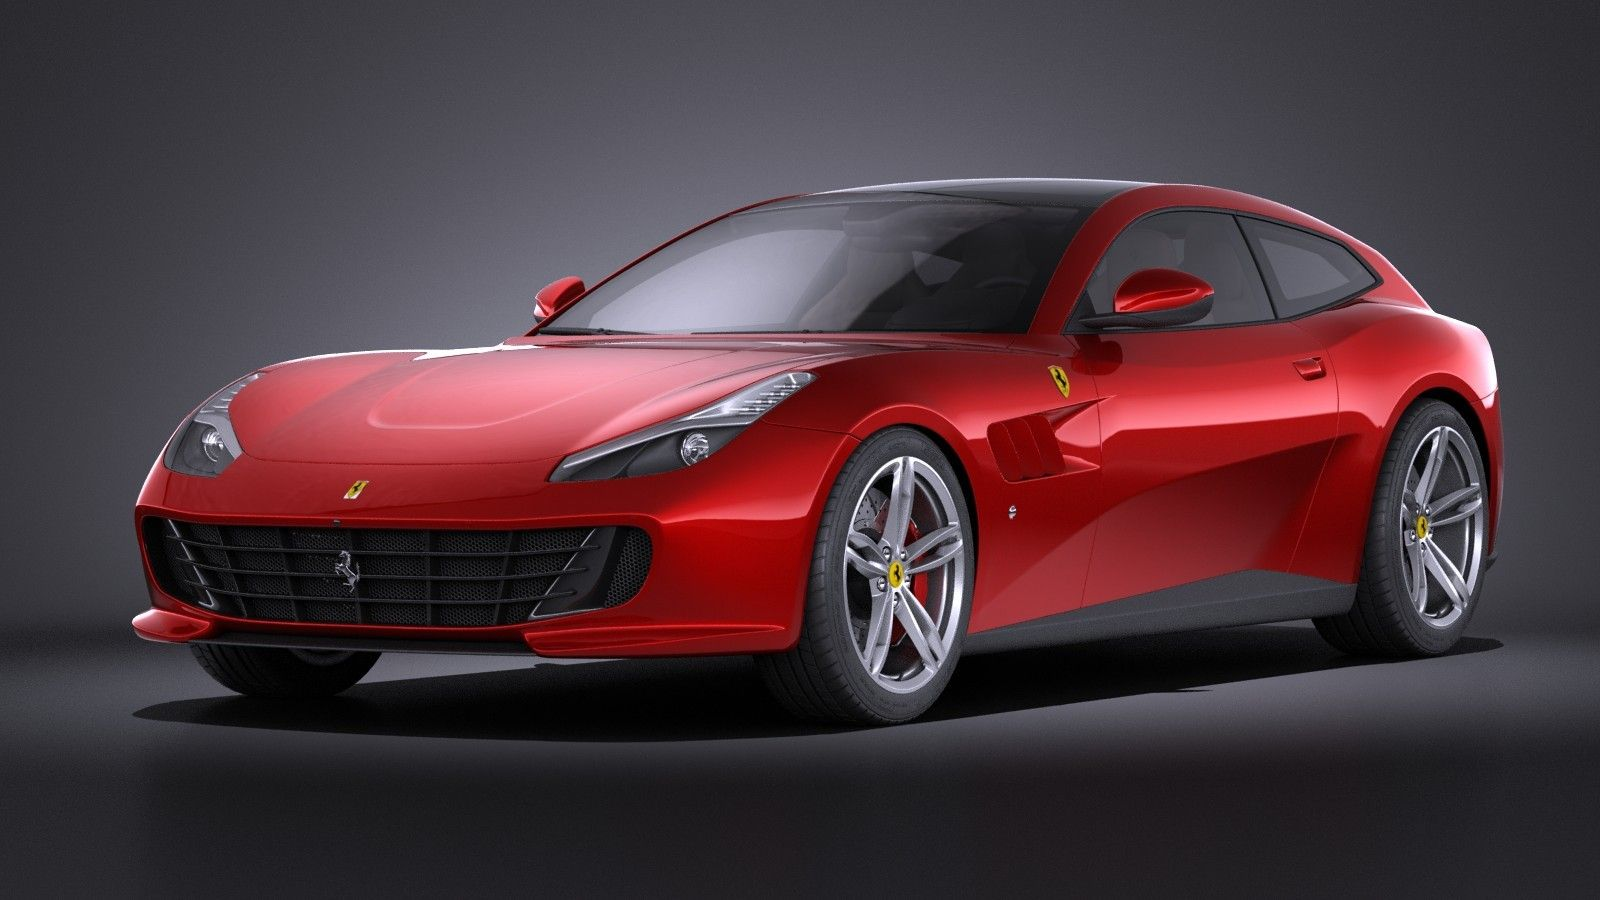 3D Model Of 2017 Ferrari Lusso - 3D Model | 3D-Modeling ...